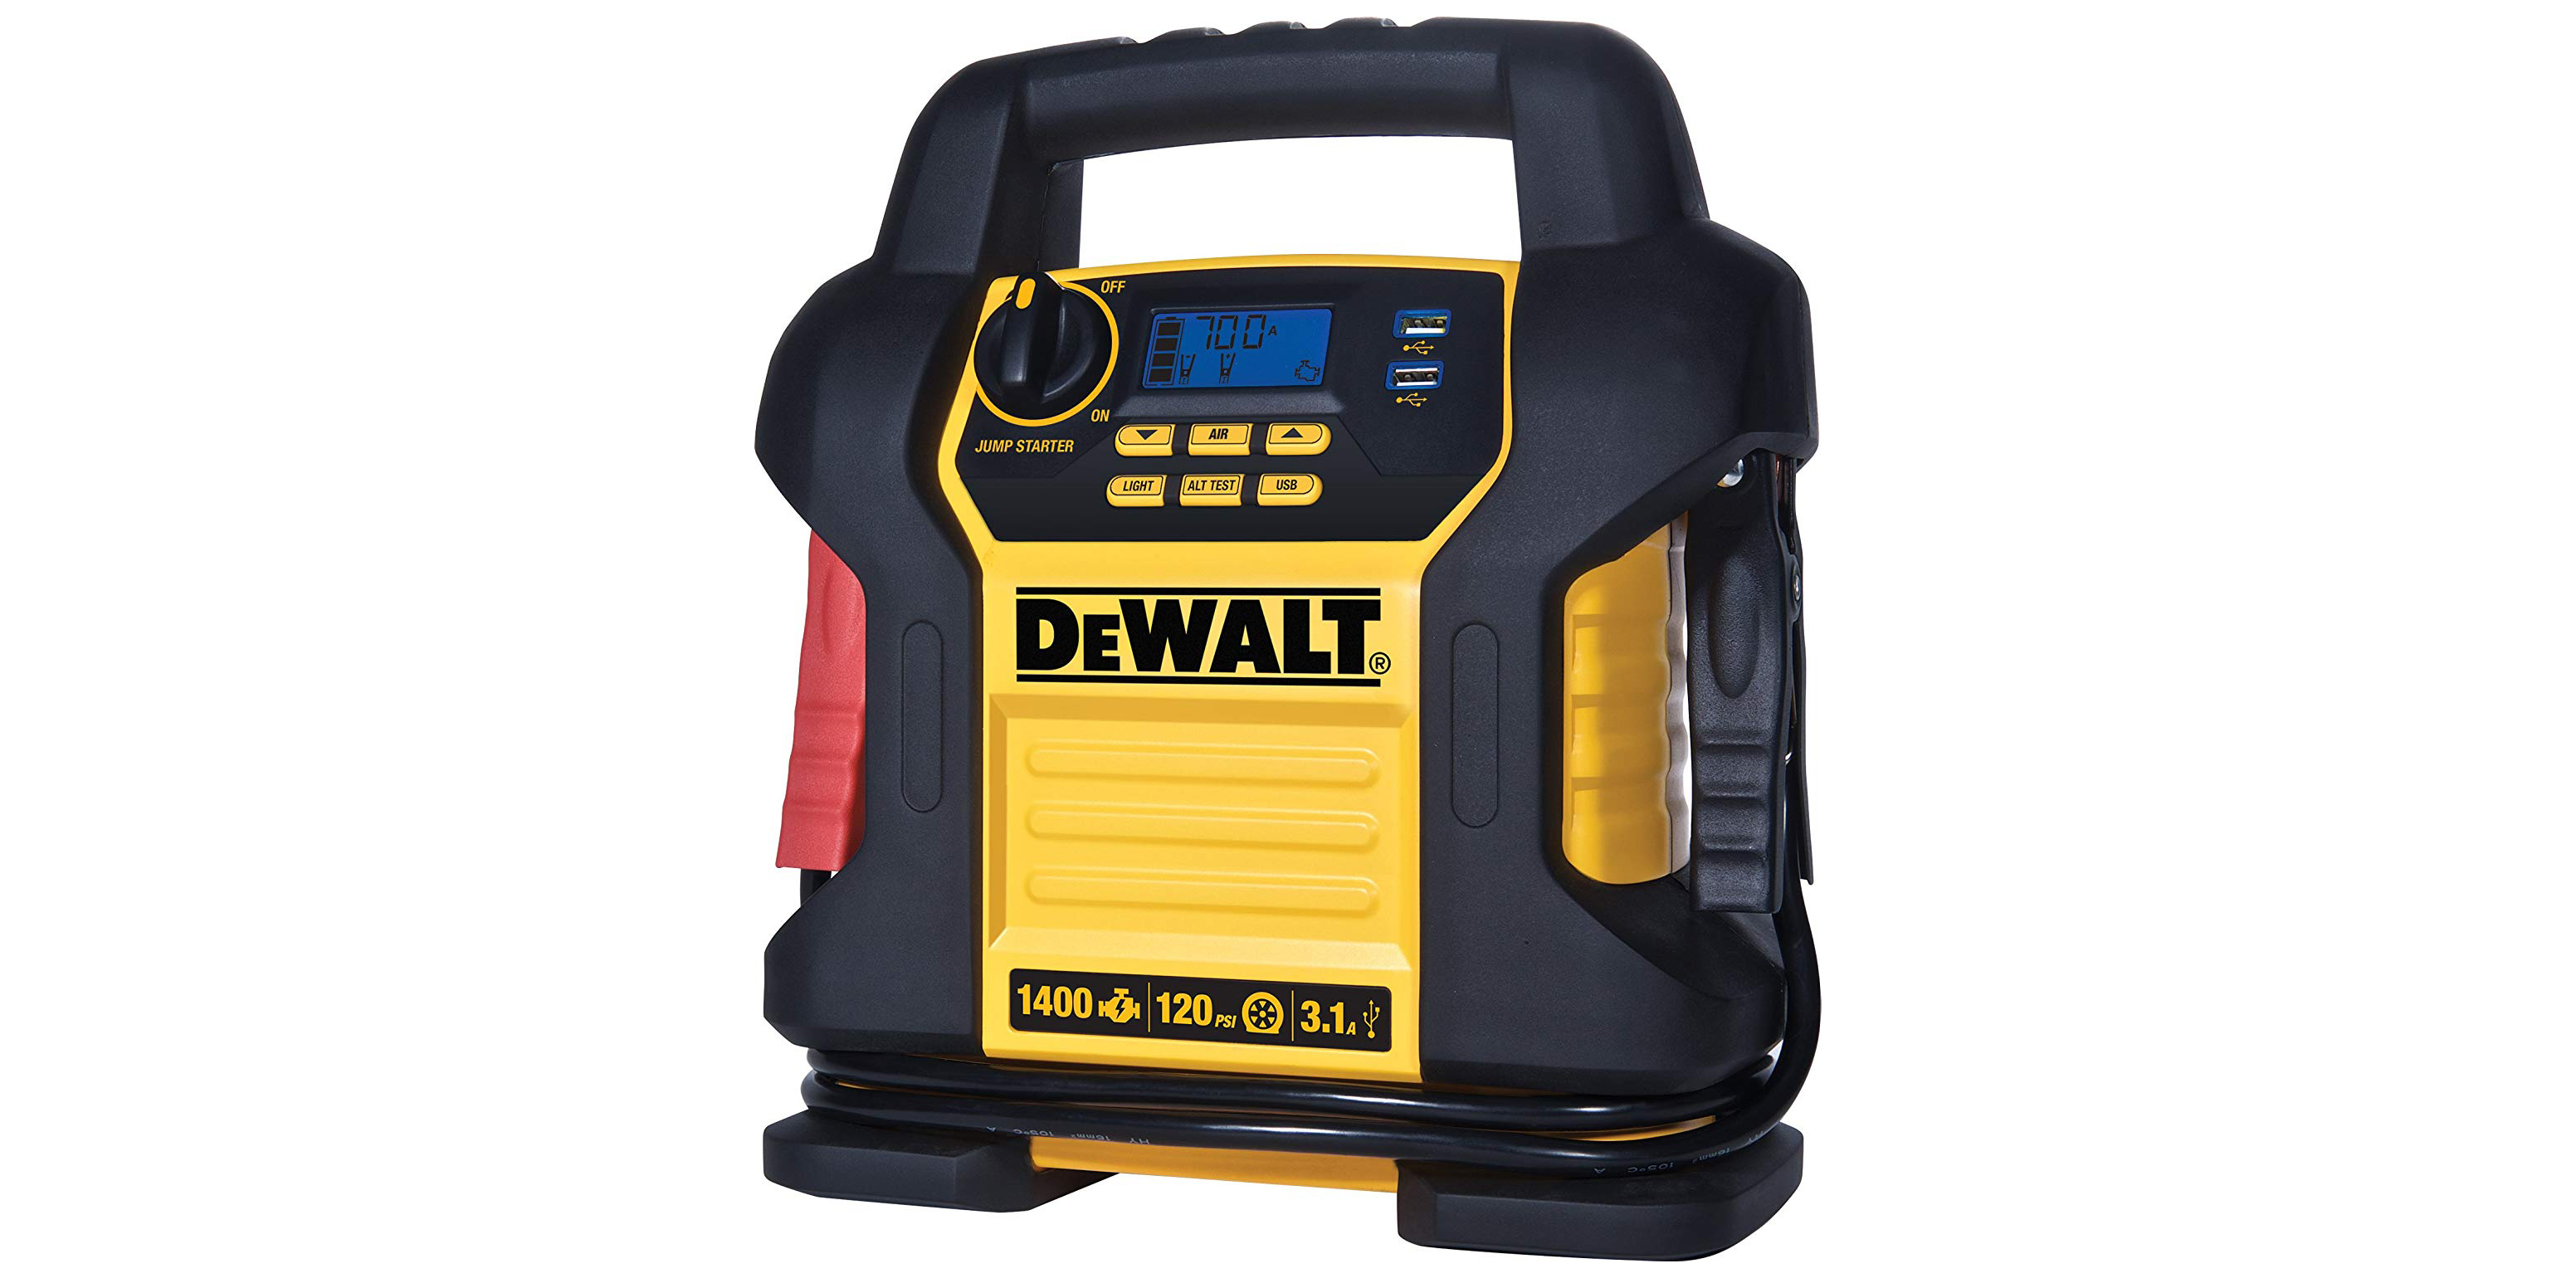 DEWALT's combination jump starter & air compressor has USB ports, now $122 (Reg. $155)